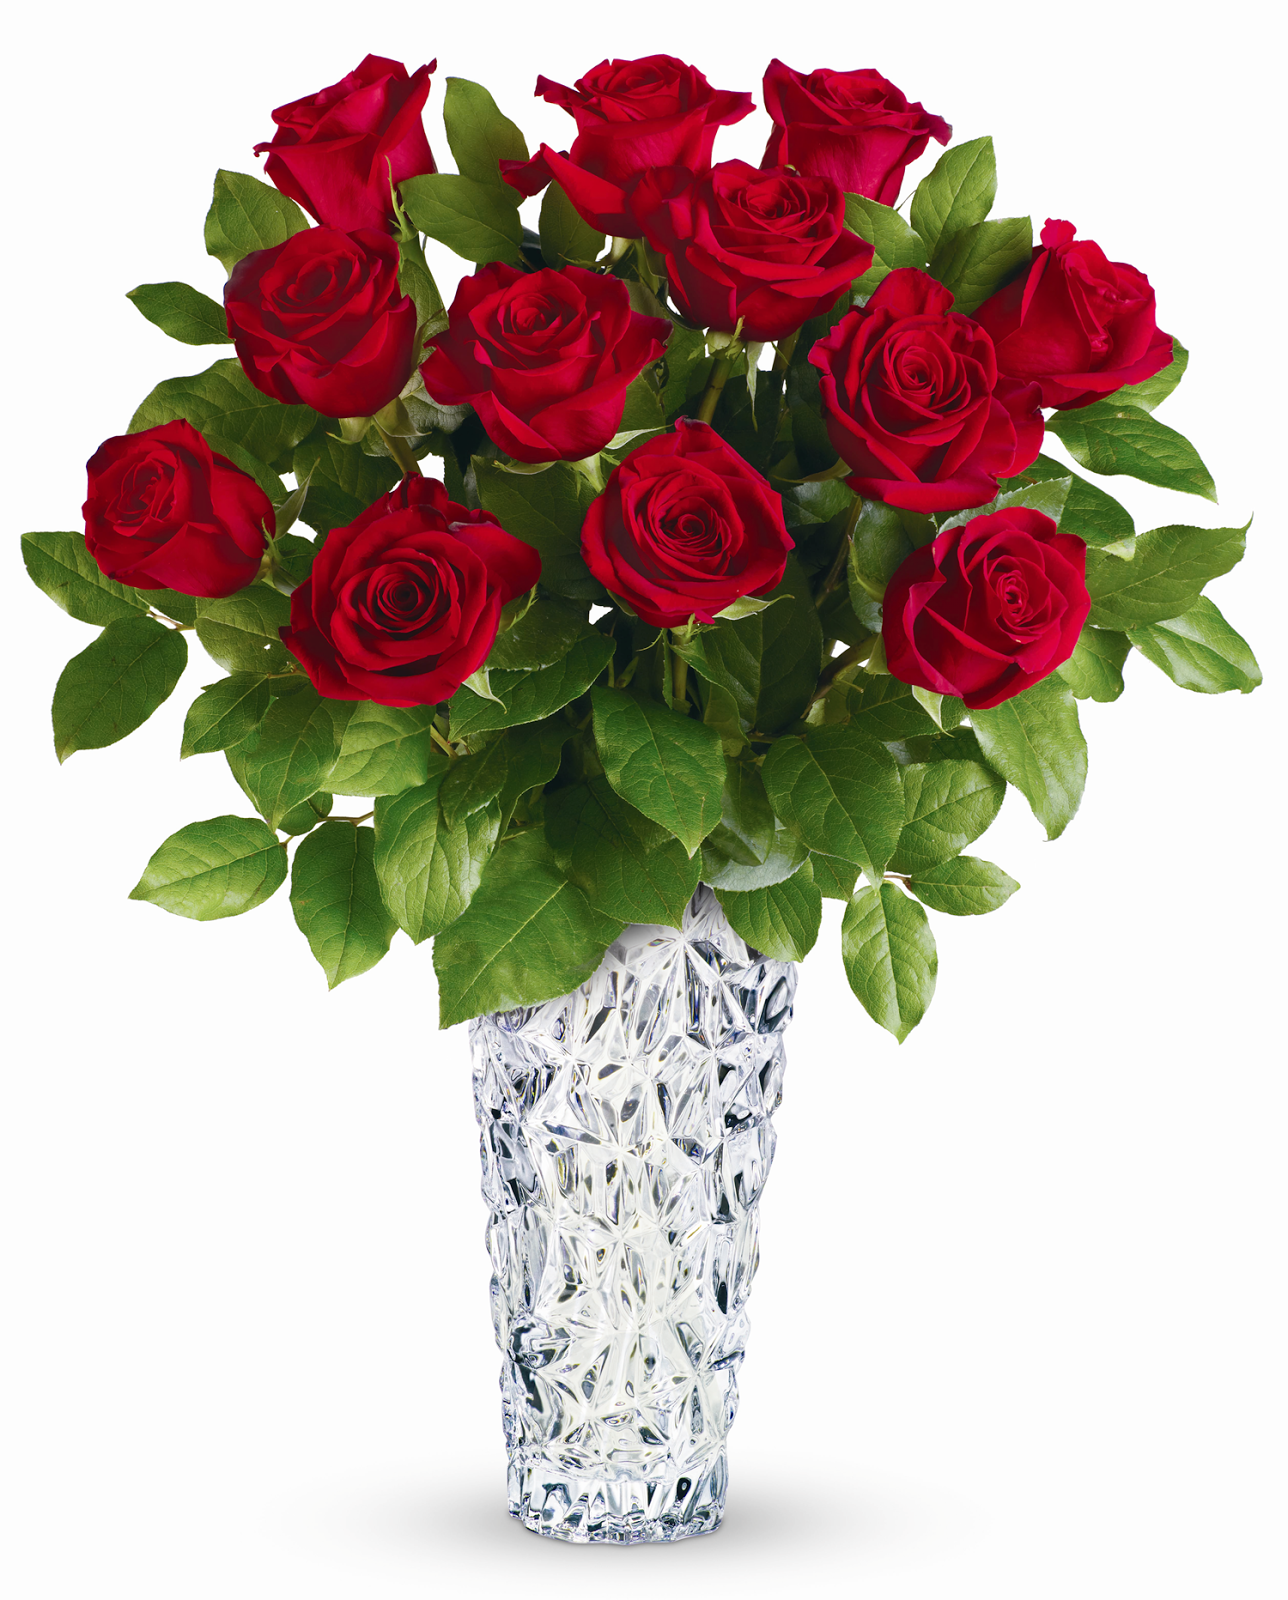 Flower With Vase - PNG HD Vase Of Flowers